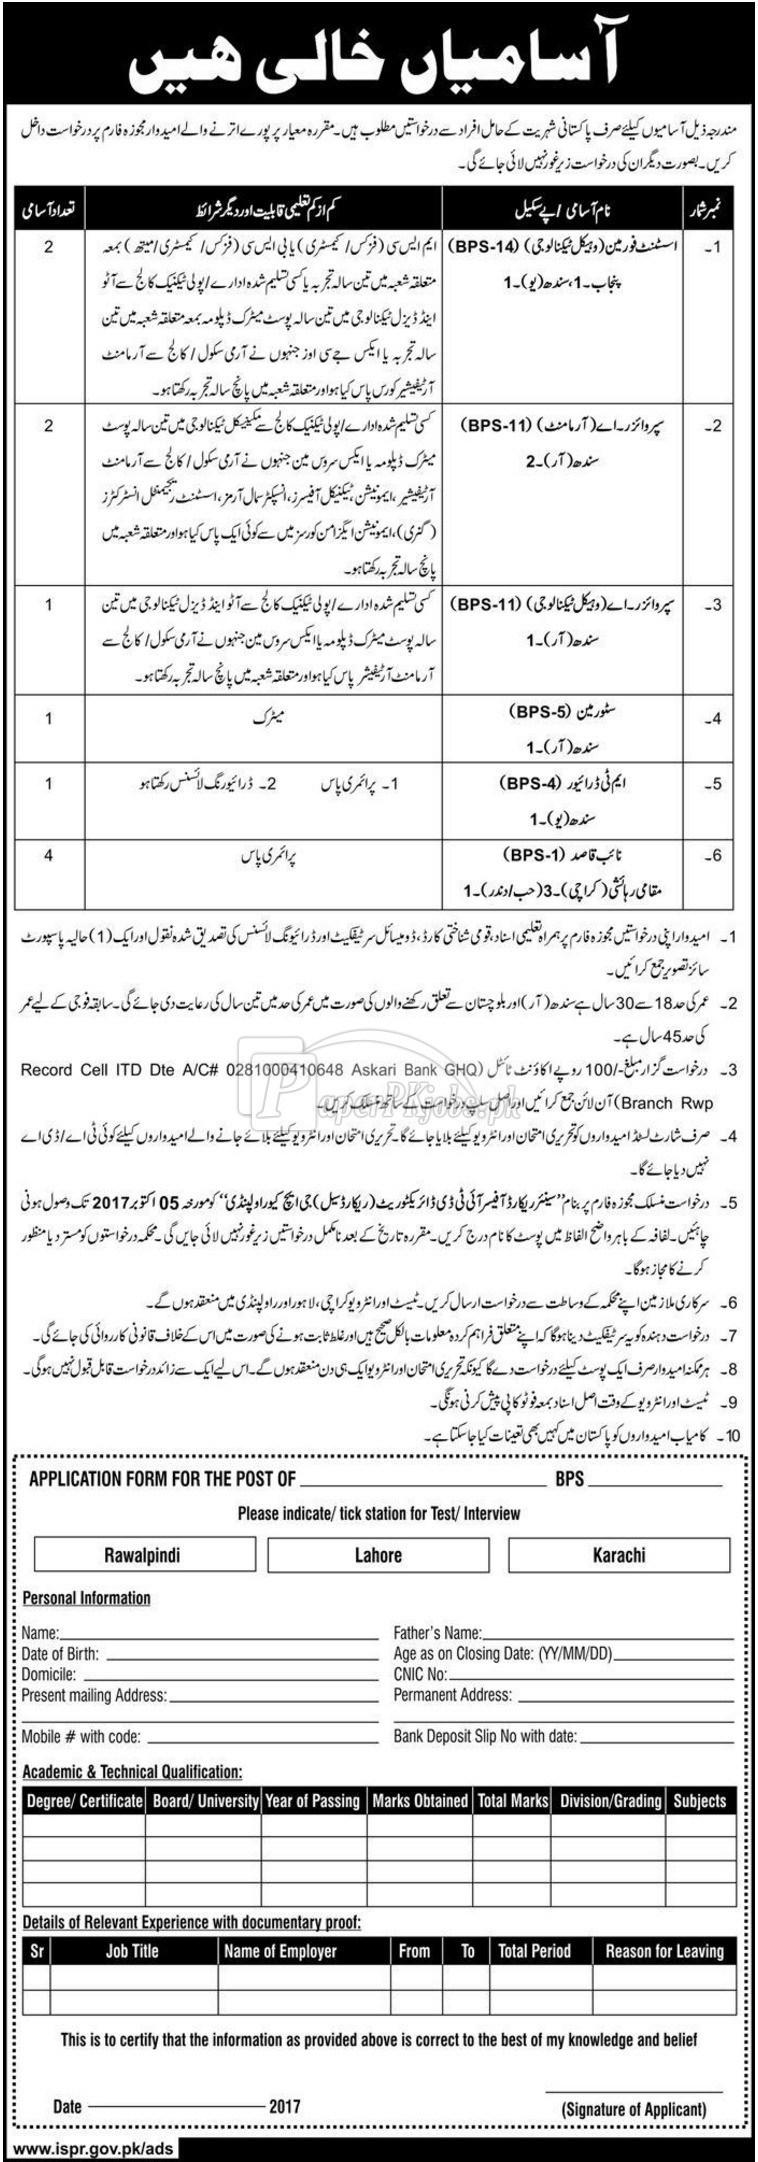 IT Directorate Record Cell GHQ Rawalpindi Jobs 2017